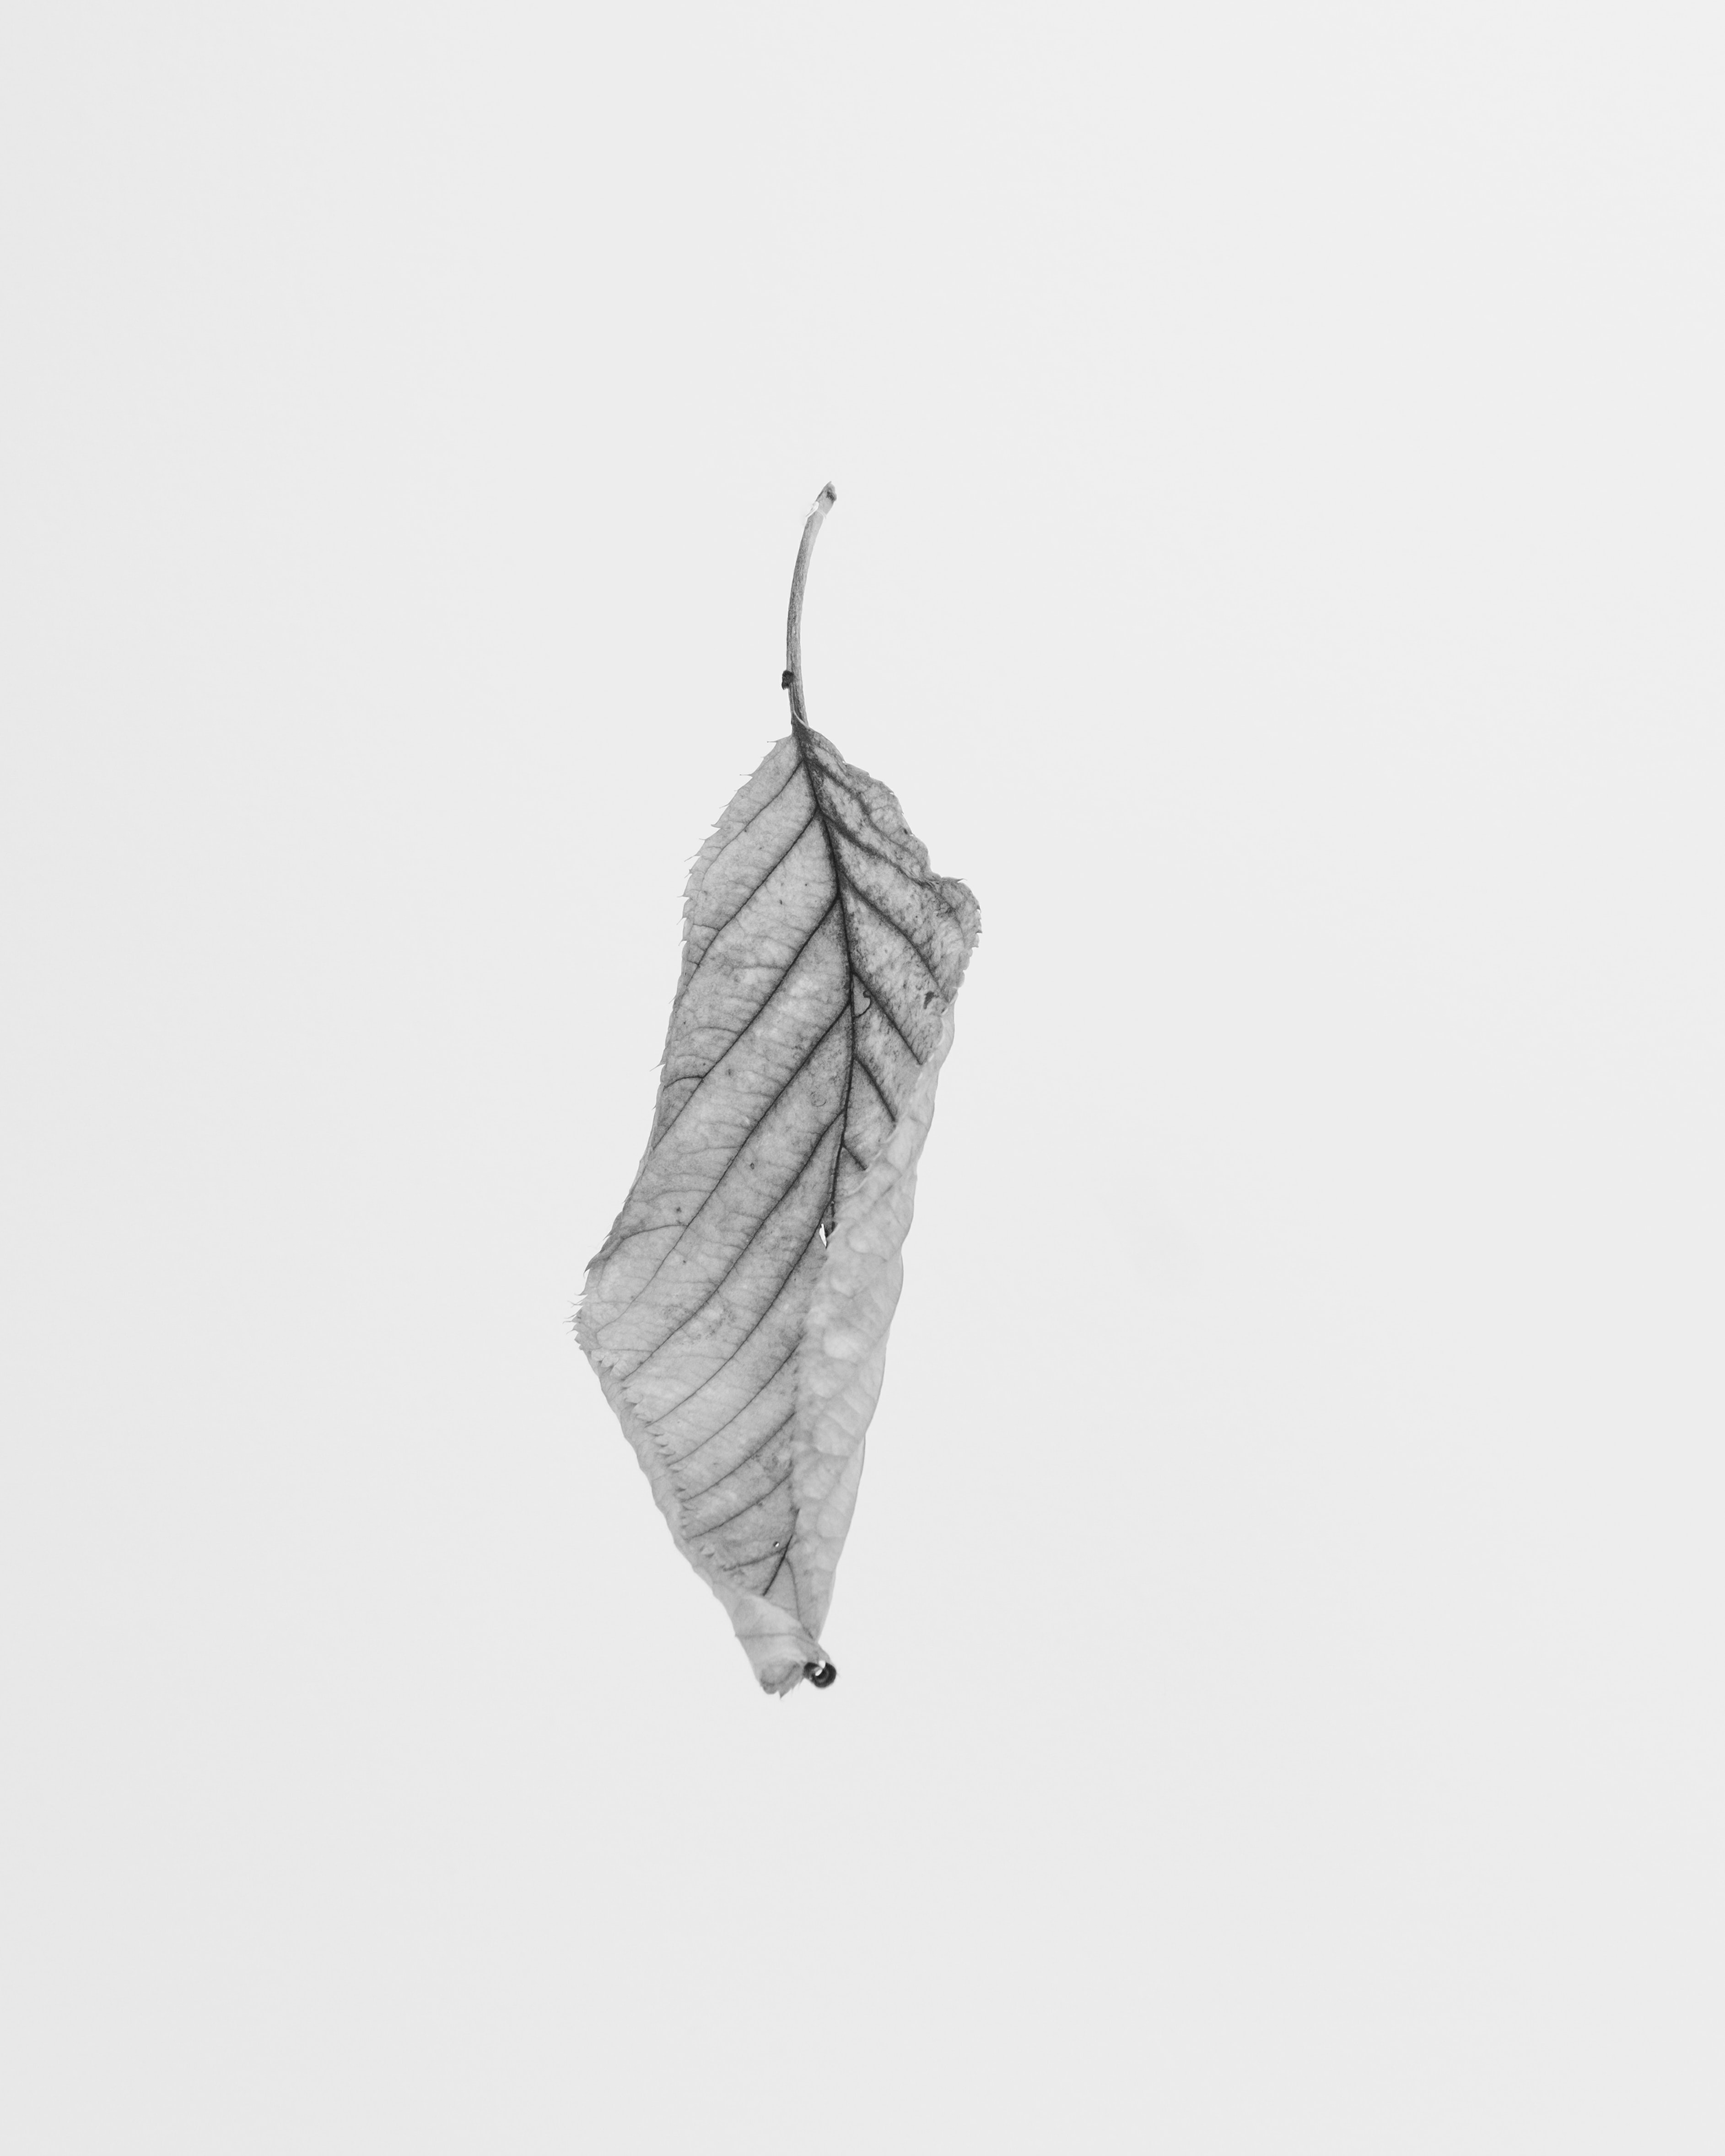 grayscale of leaf